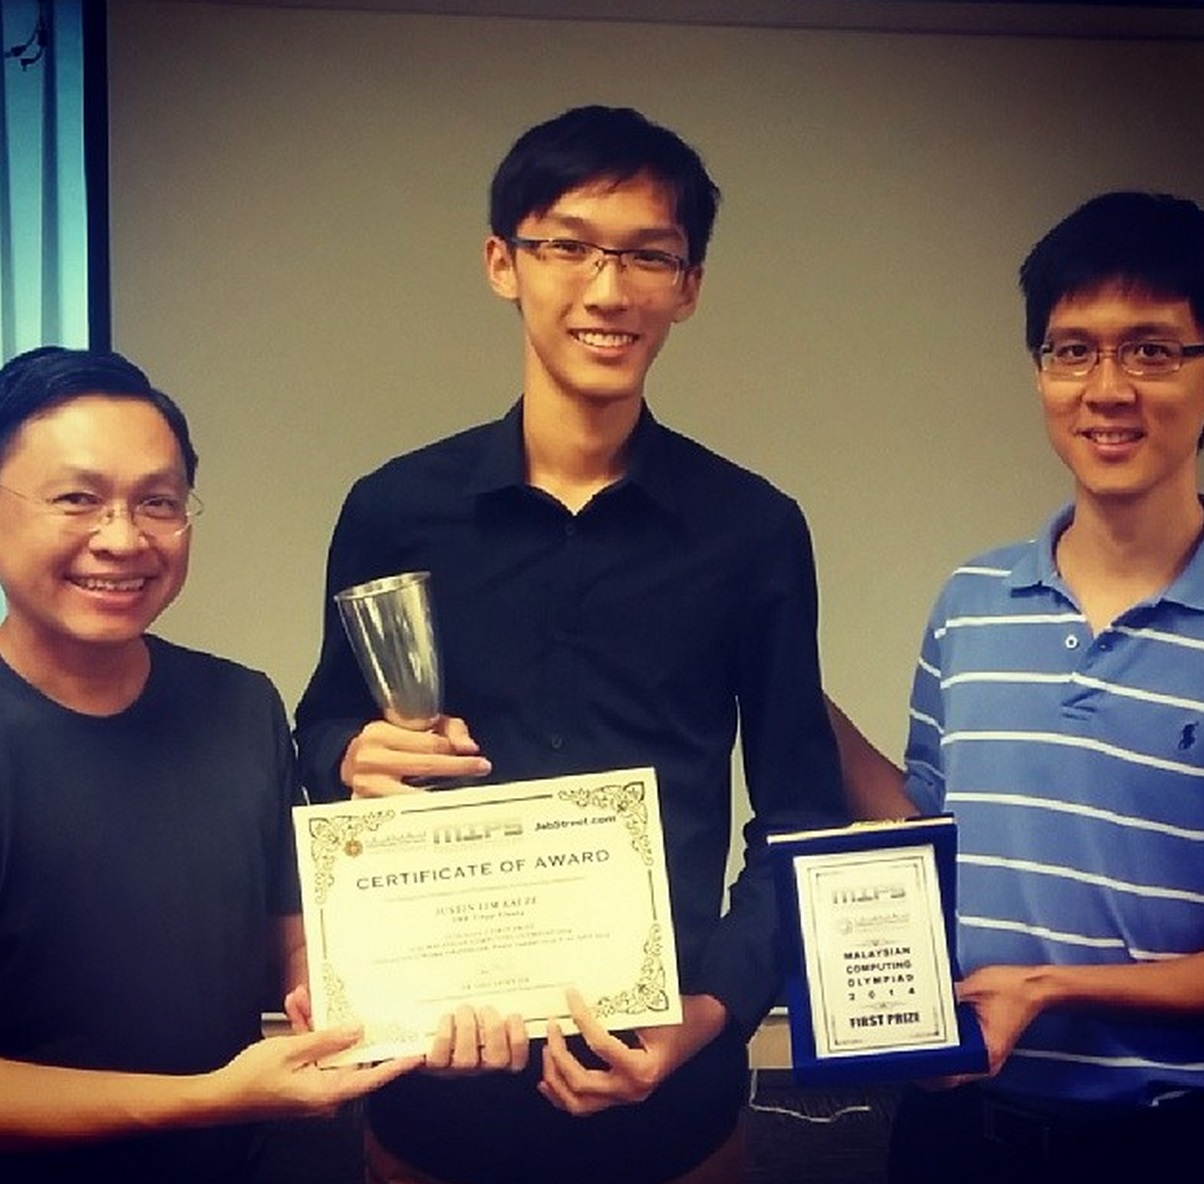 Justin Lim receiving the MCO Challenge Trophy from Mr Mark Chang and Dr Ong Shien Jin.